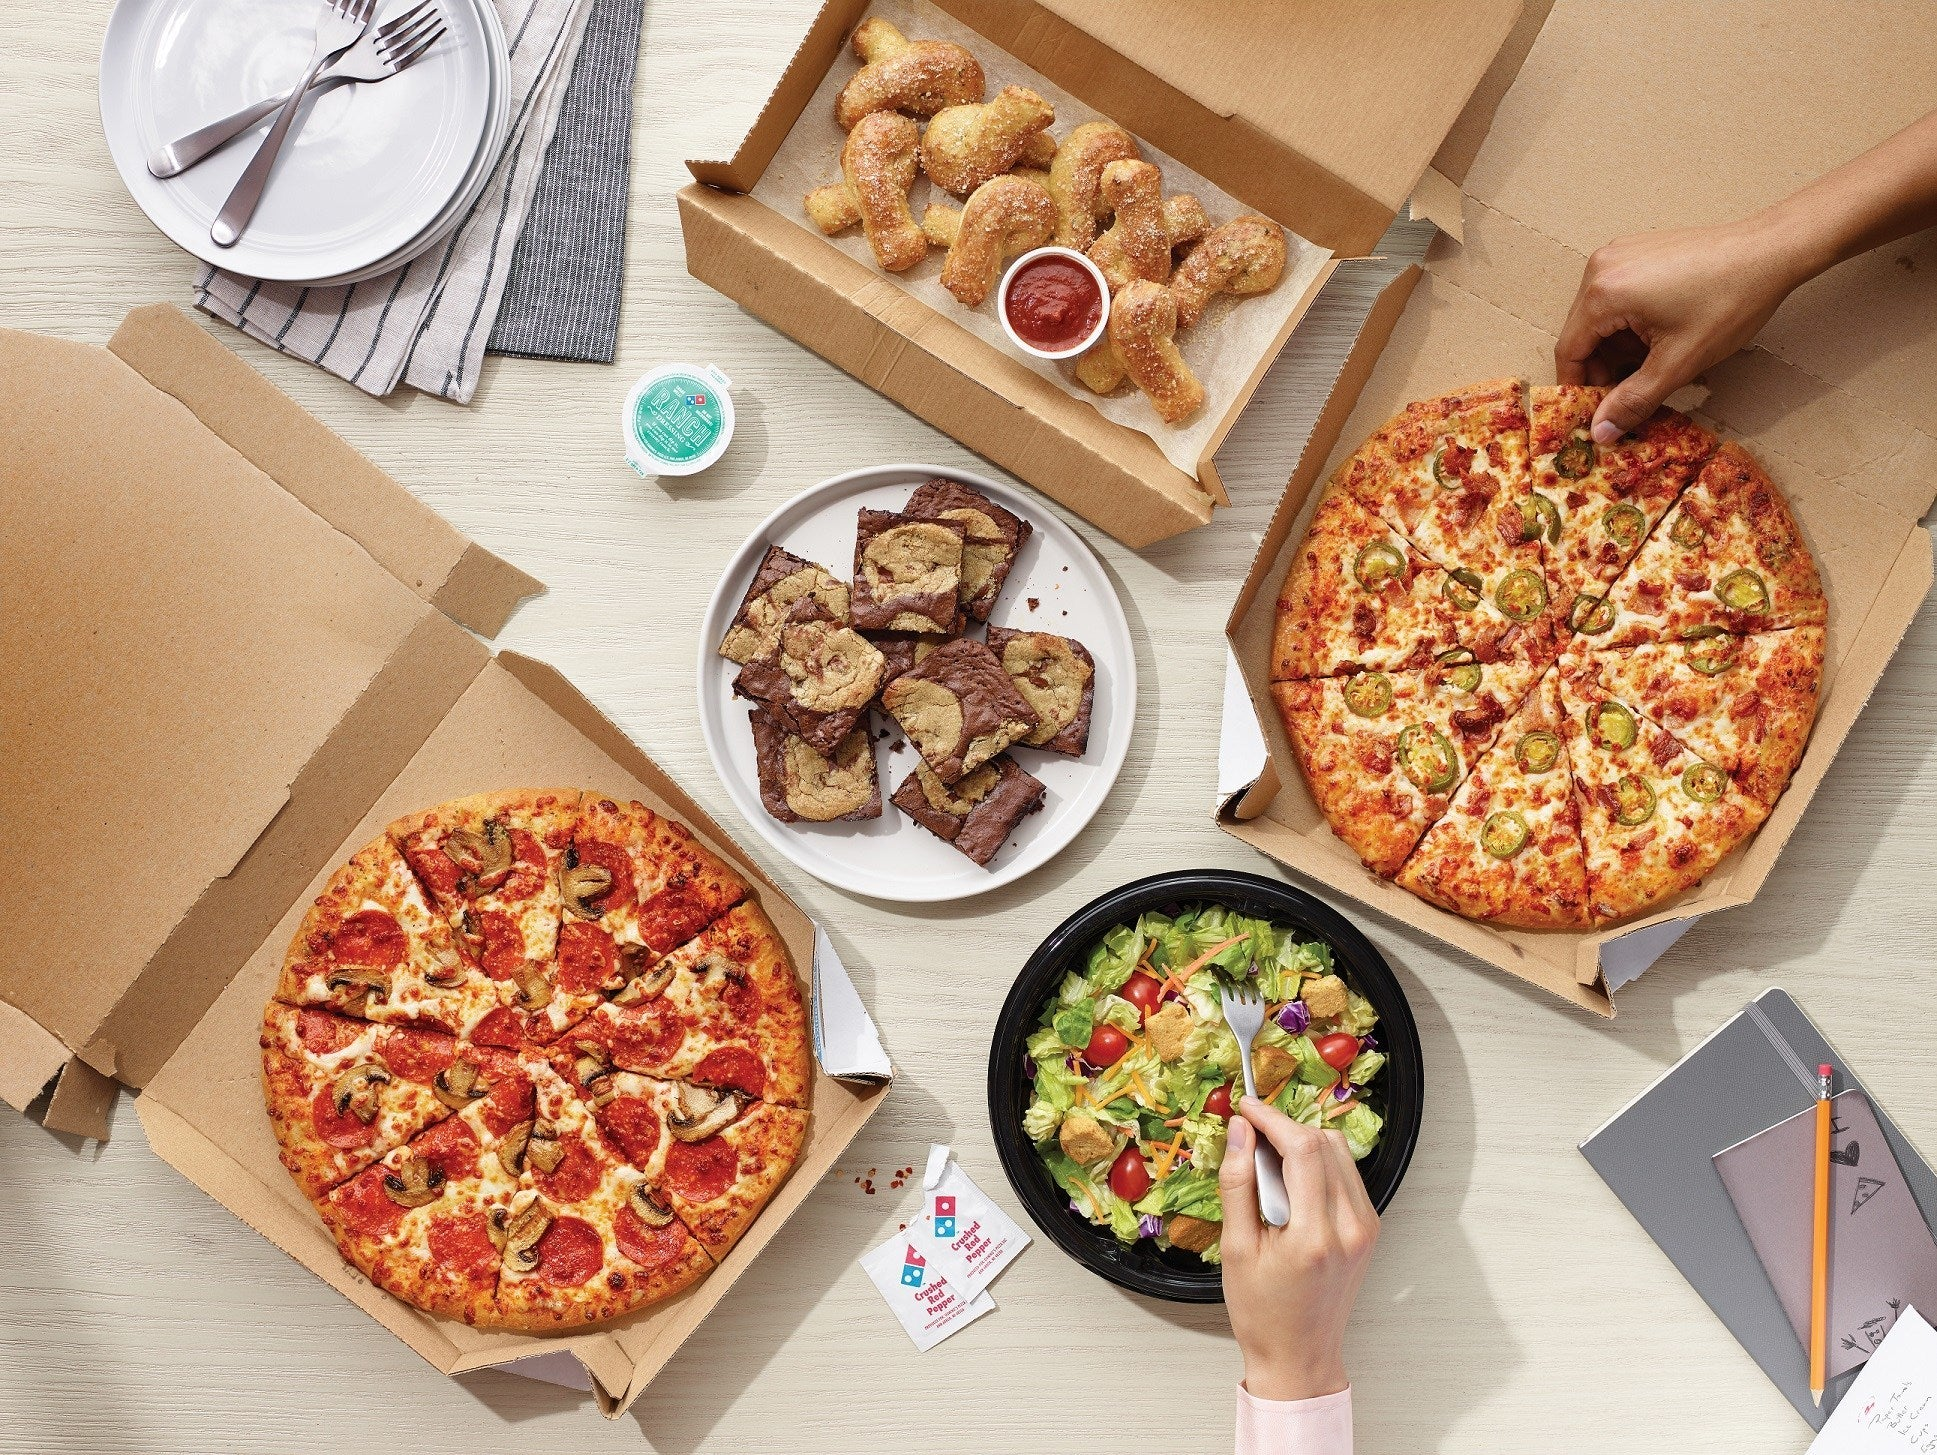 Domino's Pizza Smashes Expectations for the Fourth Quarter | The Motley Fool